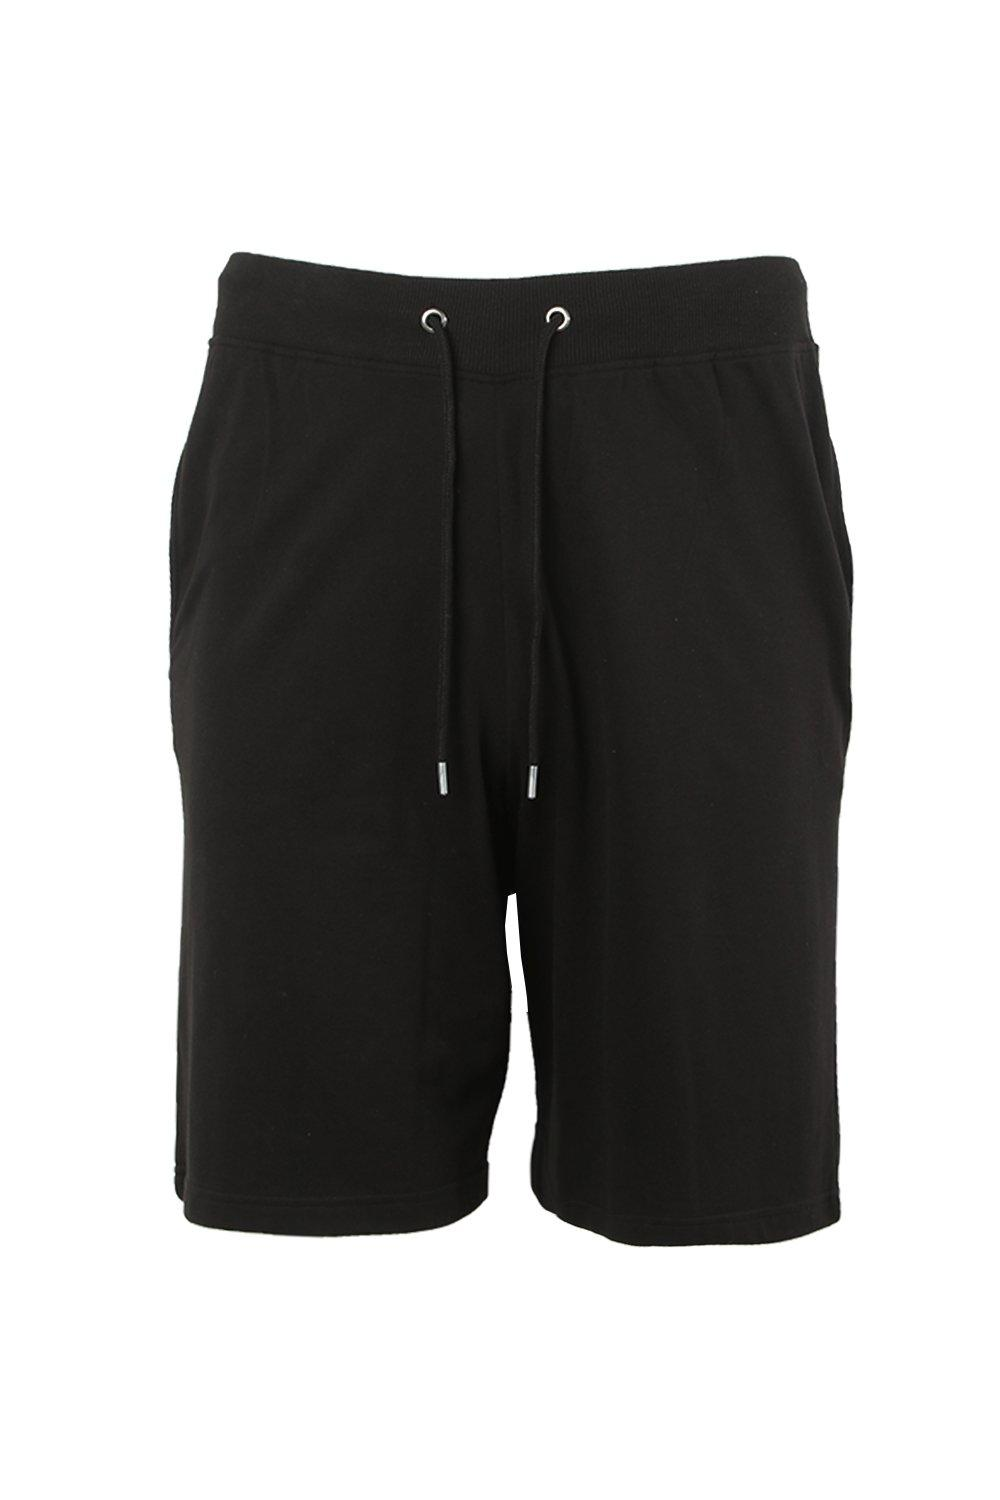 boohooMAN black Big And Tall Stripe Detail Shorts